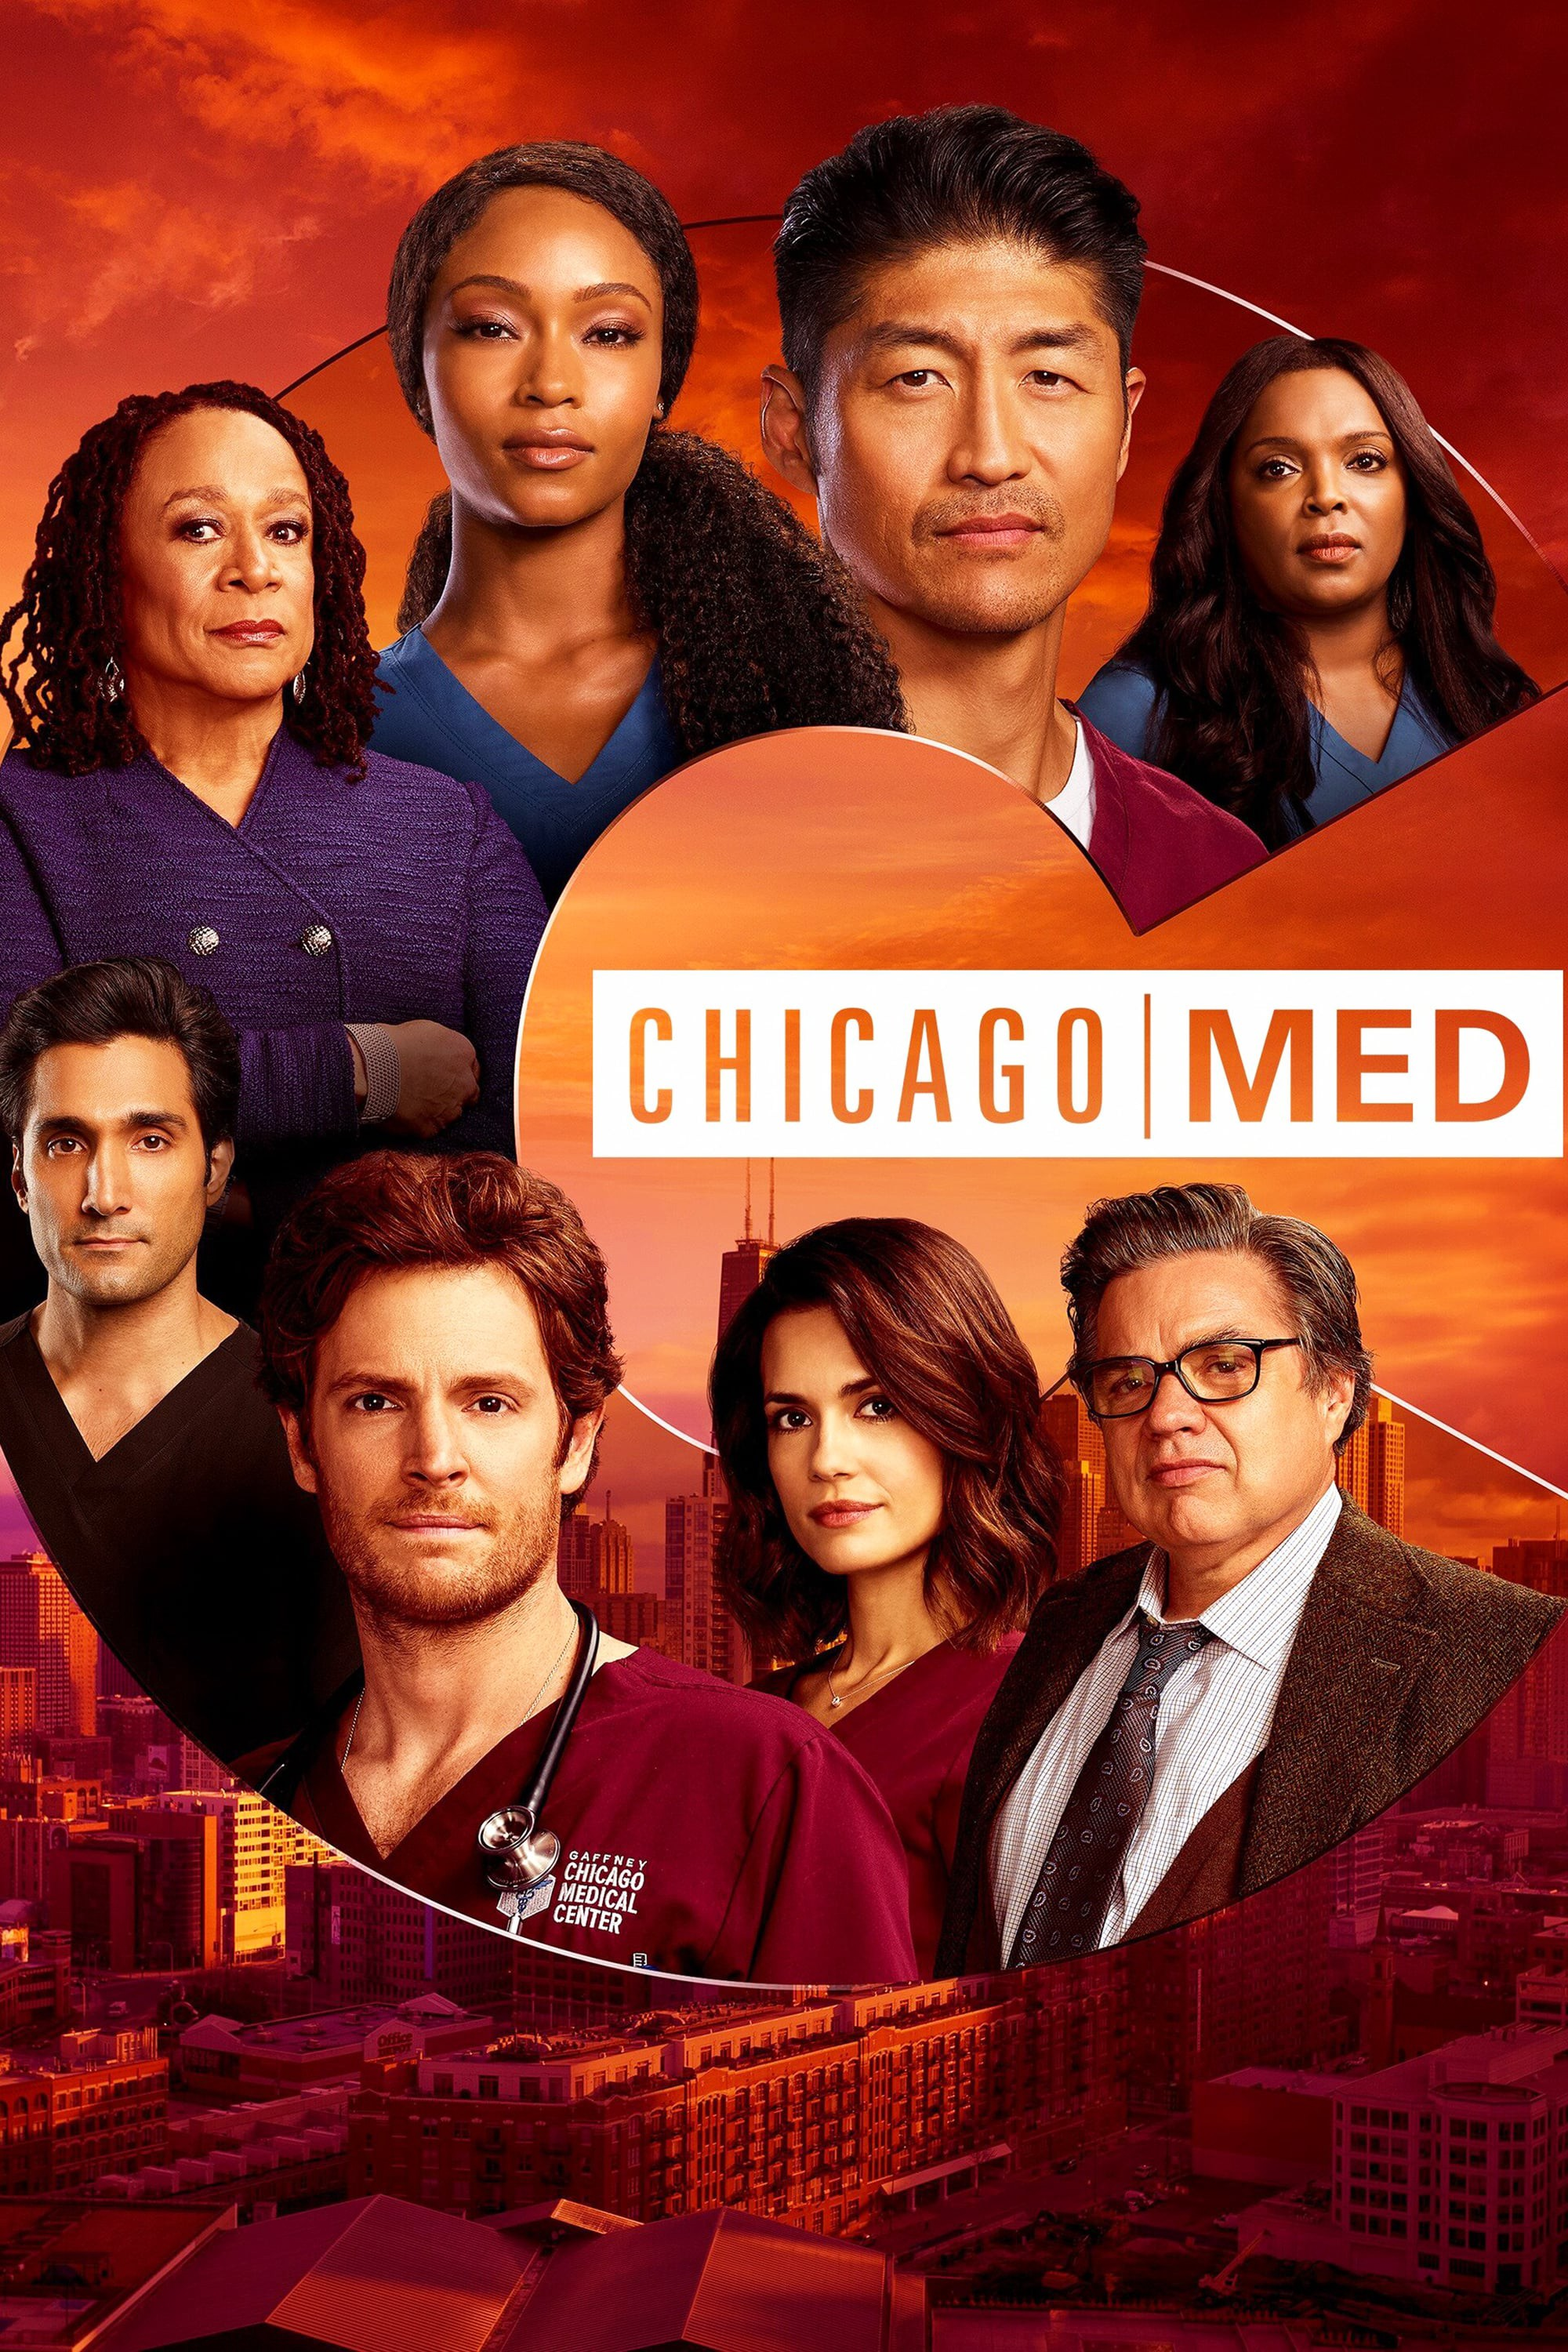 Chicago Med - Season 6 Episode 12 - Some Things Are Worth the Risk